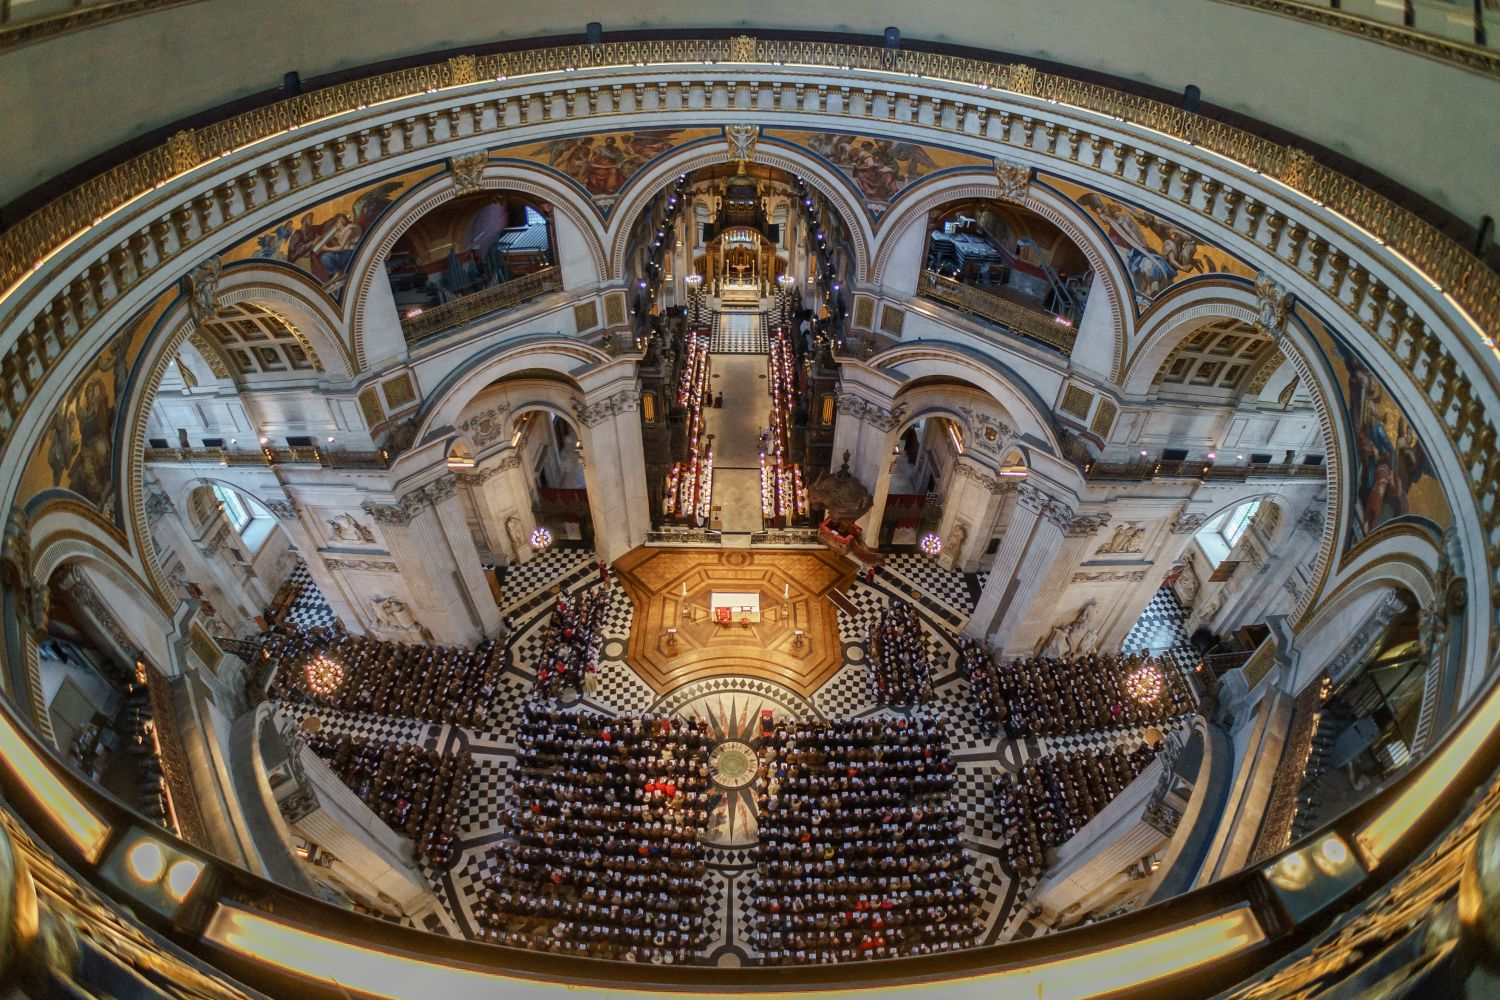 A service as seen from the whispering Gallery